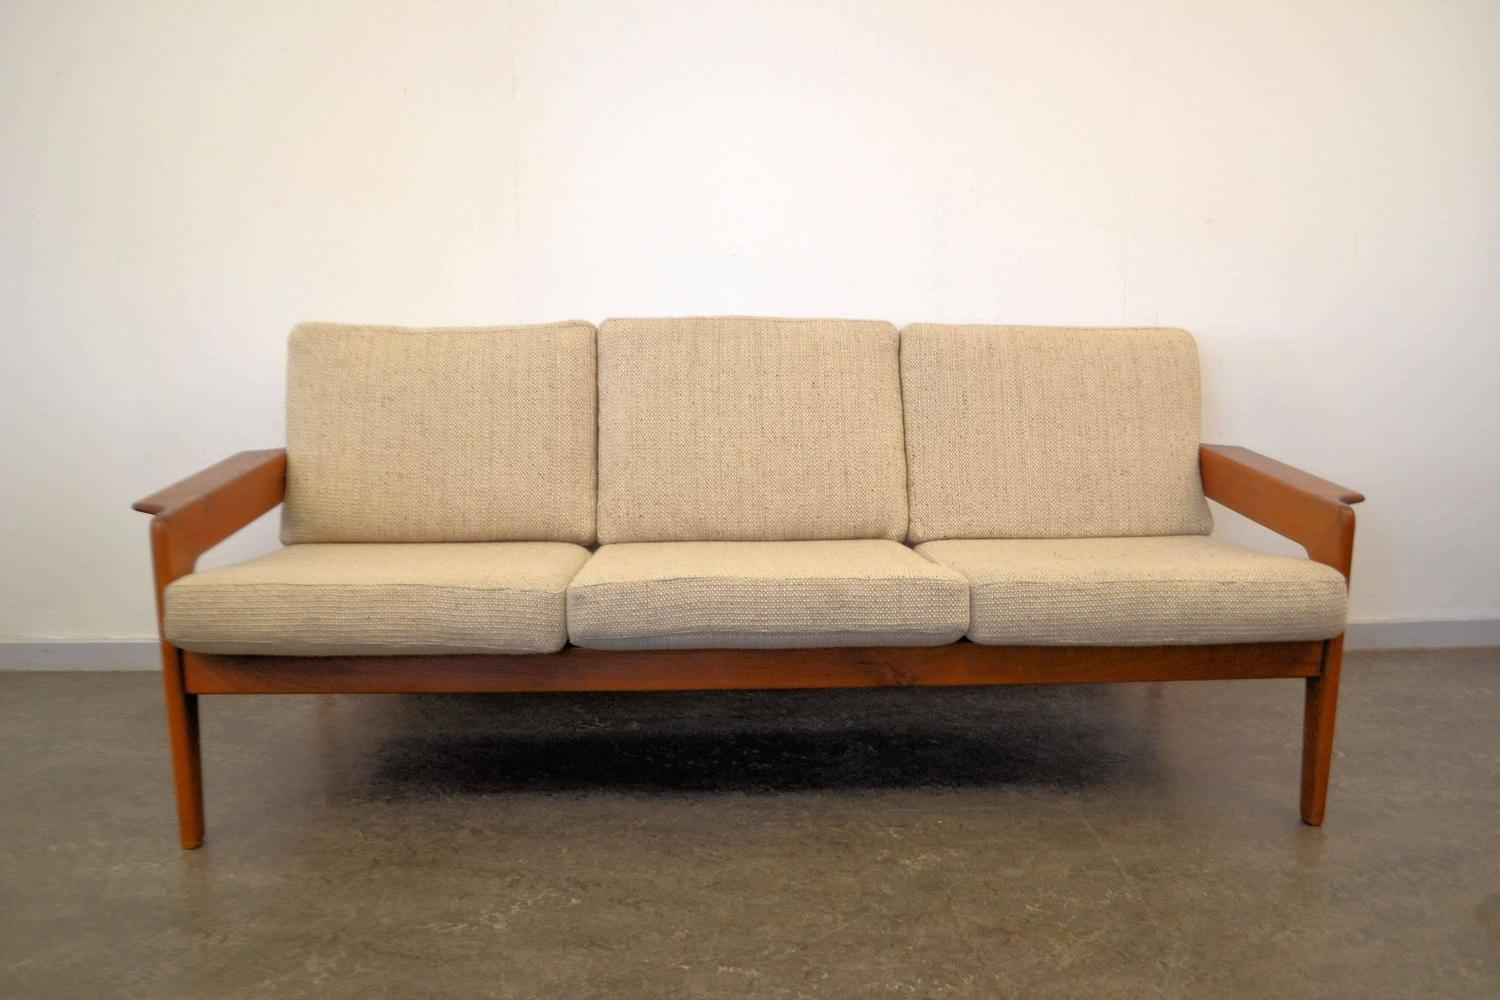 danish modern arne wahl iversen three seat sofa for sale at 1stdibs. Black Bedroom Furniture Sets. Home Design Ideas